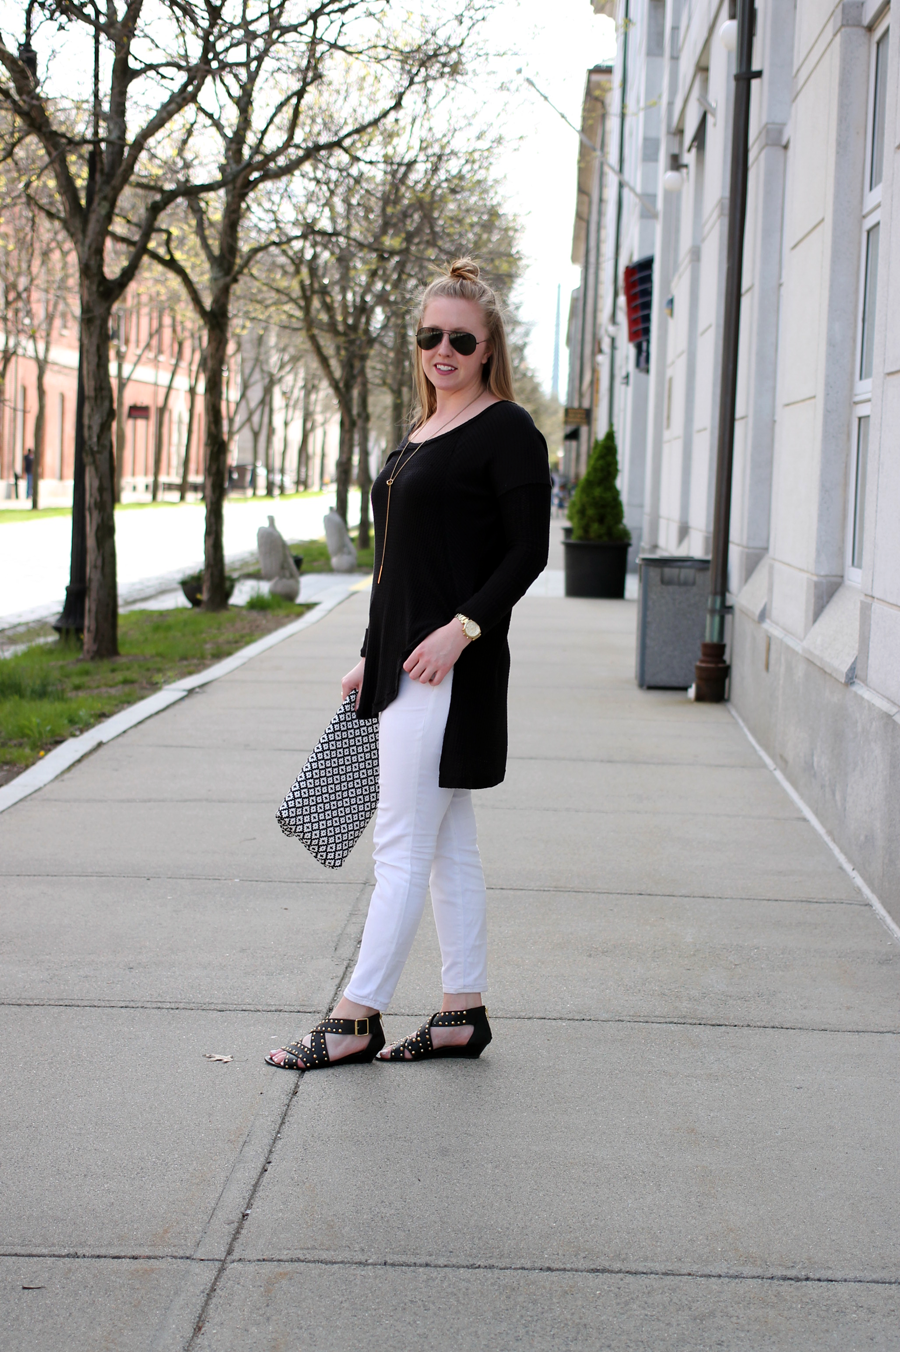 boston blogger outfits, boston blogger spring, black and white street style, street style boston, vince camuto woven clutch, woven black and white clutch, free people thermal top, free people at lord and taylor, shop my post